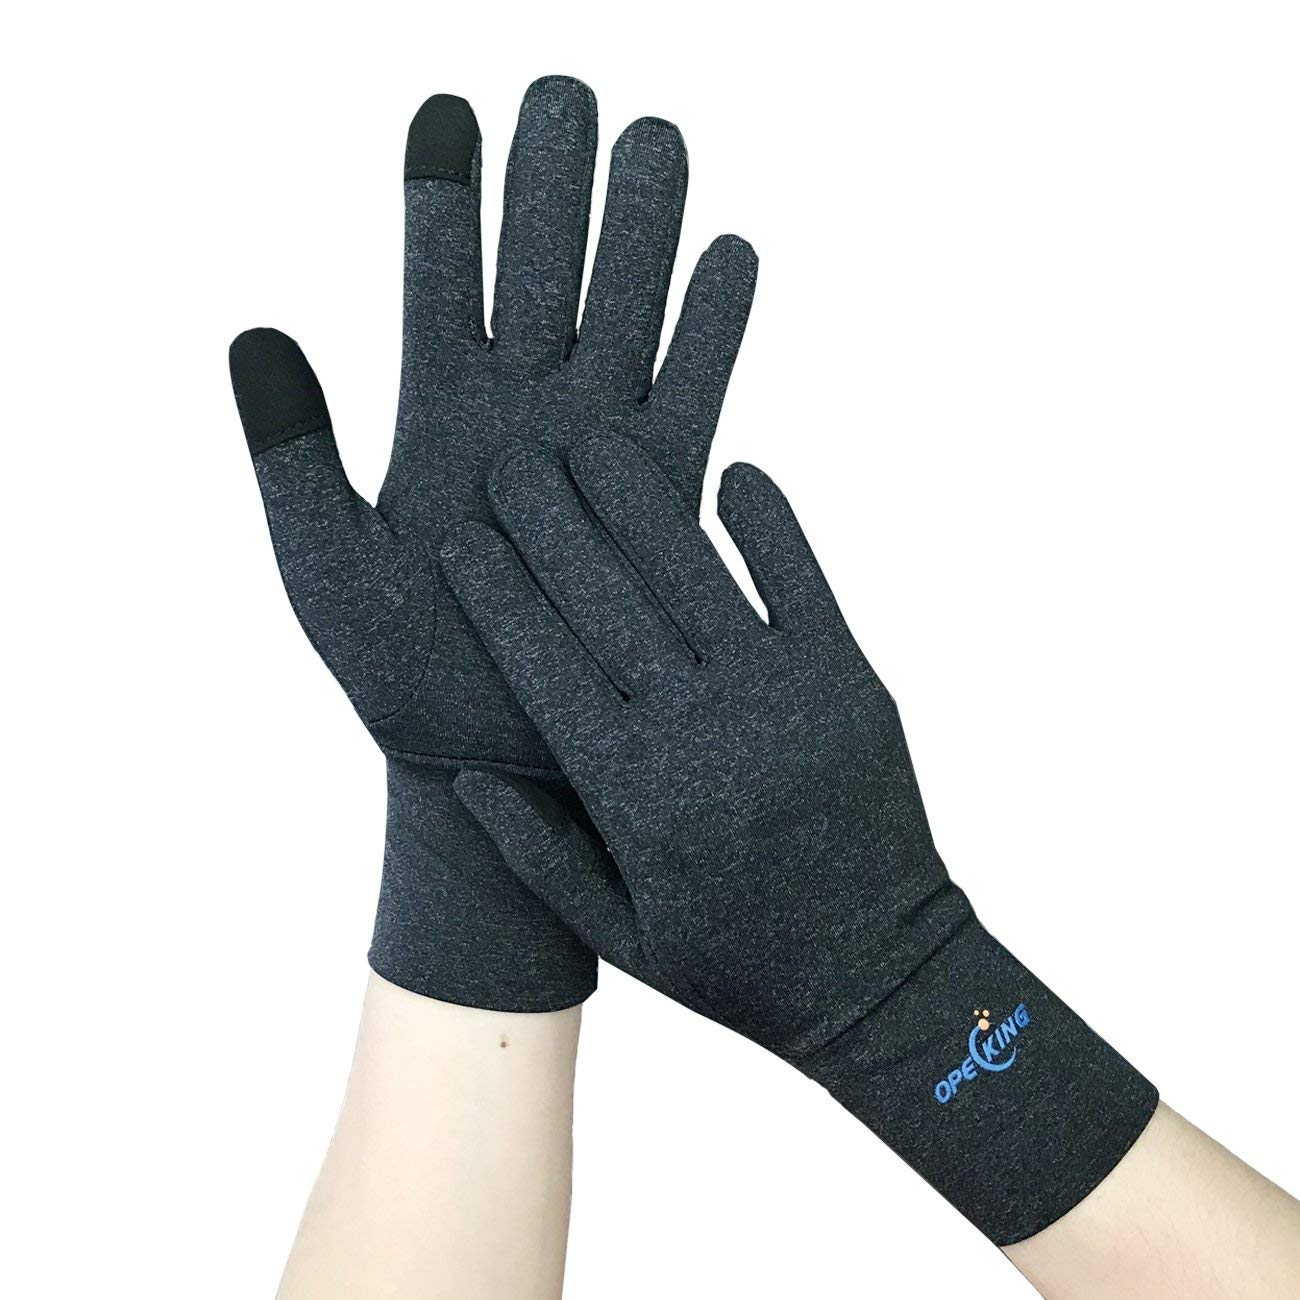 Compression Gloves for Arthritis, Hand Brace Full Finger, Raynaud Gloves Women with Touch Screen, Breathable Hand Warm Gloves Relieve Rheumatoid, Raynauds Disease & Carpal Tunnel by OpeCking